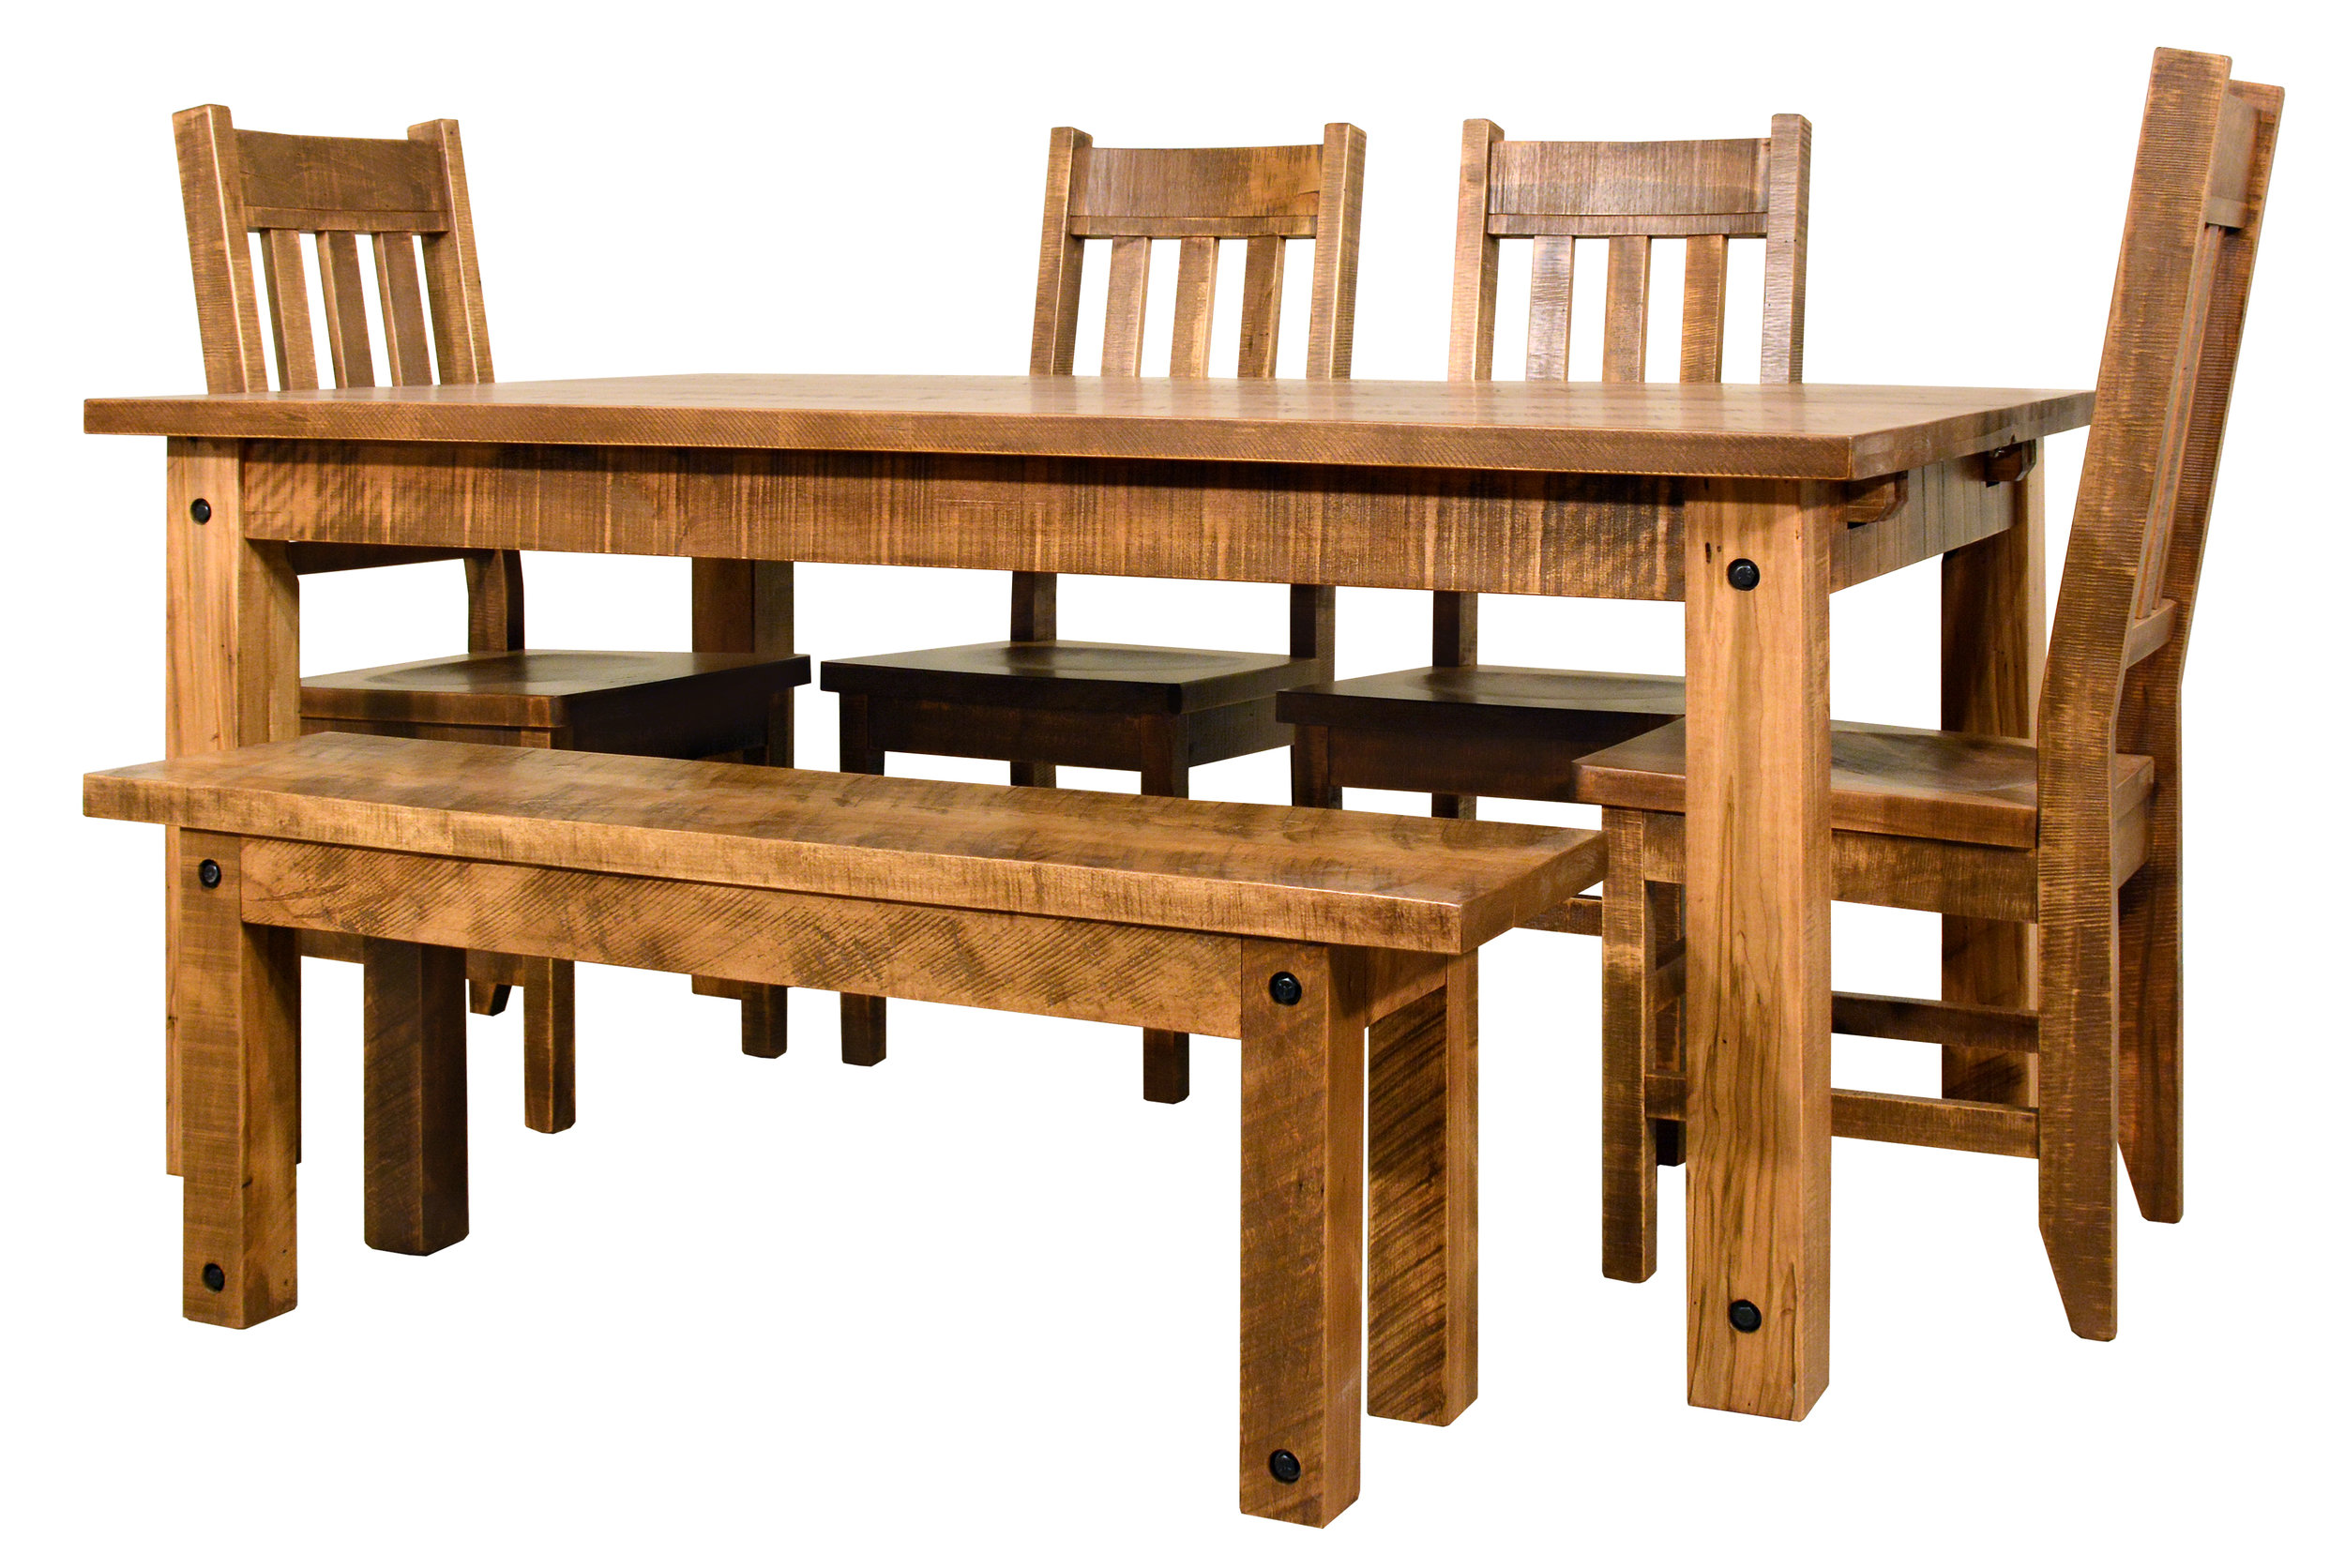 kitchen tables for sale from amish woodworkers in Warren, PA